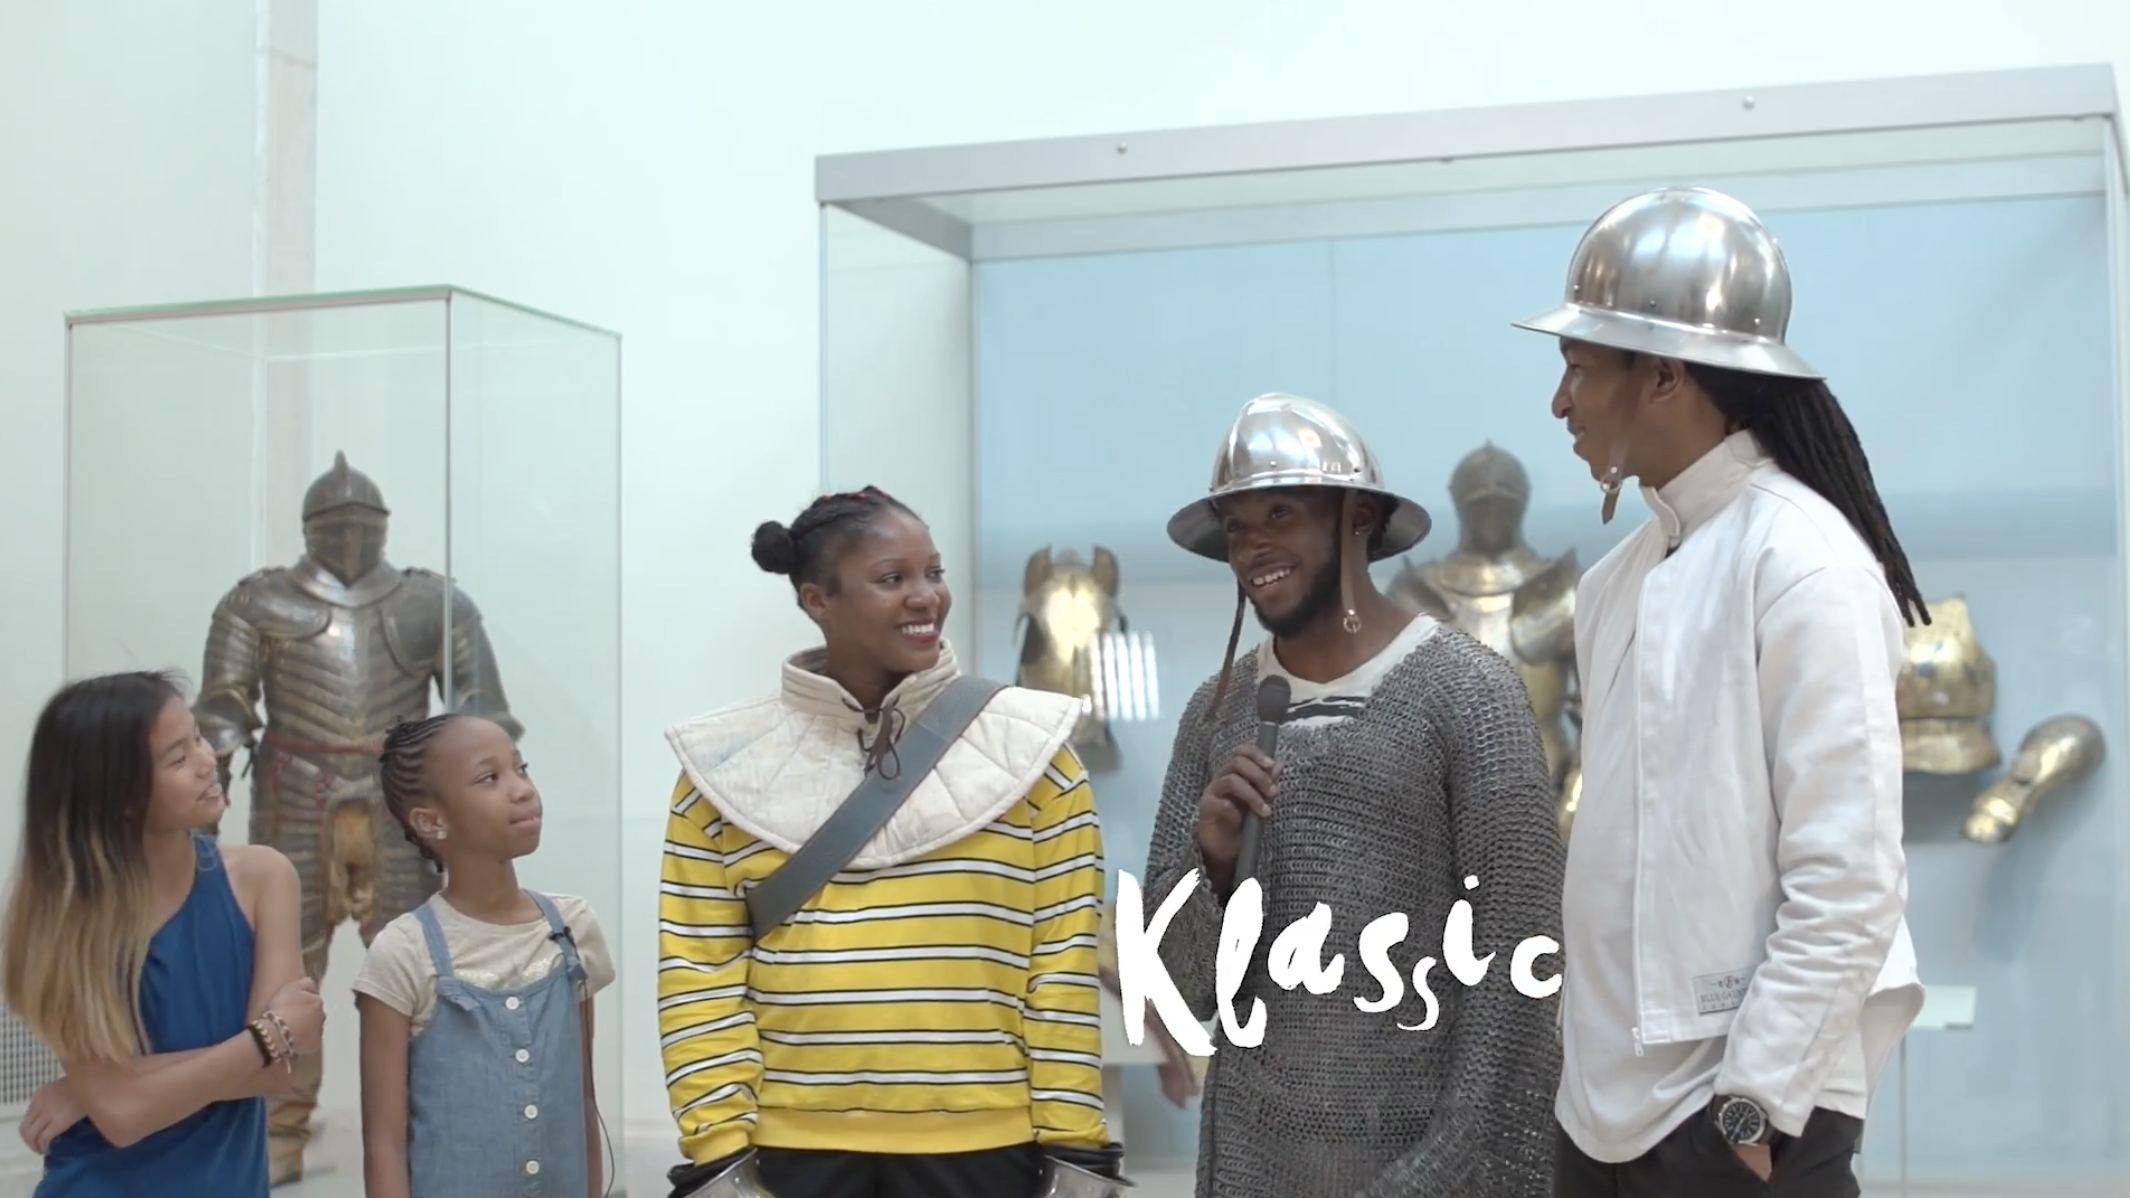 #MetKIDS interview It's showtime NYC dancers about their performance and how it feels to dance in armor. Click to watch full video